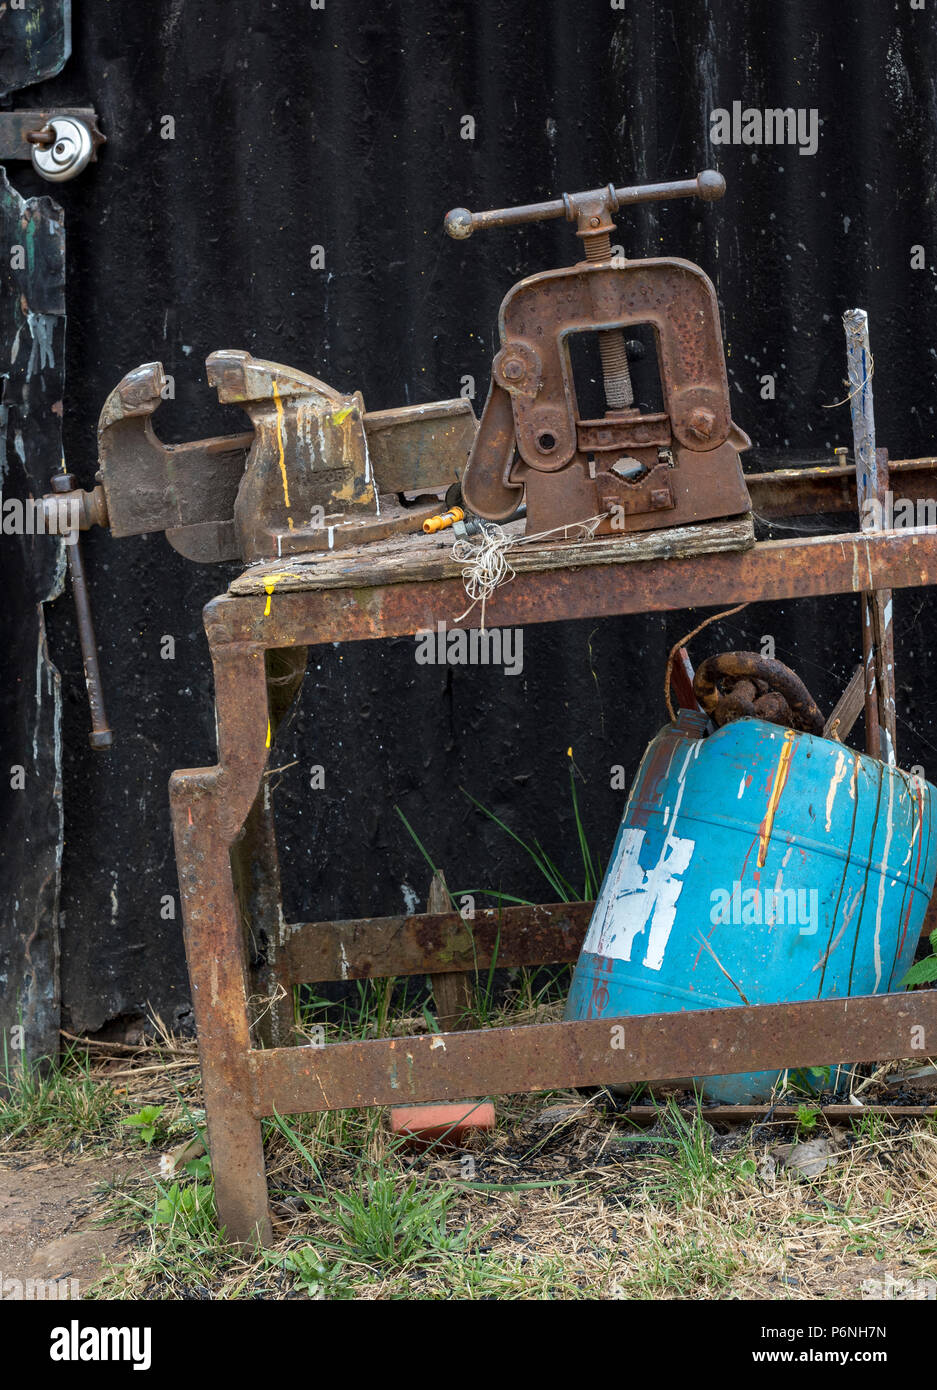 an old workbench and rusty vice. - Stock Image